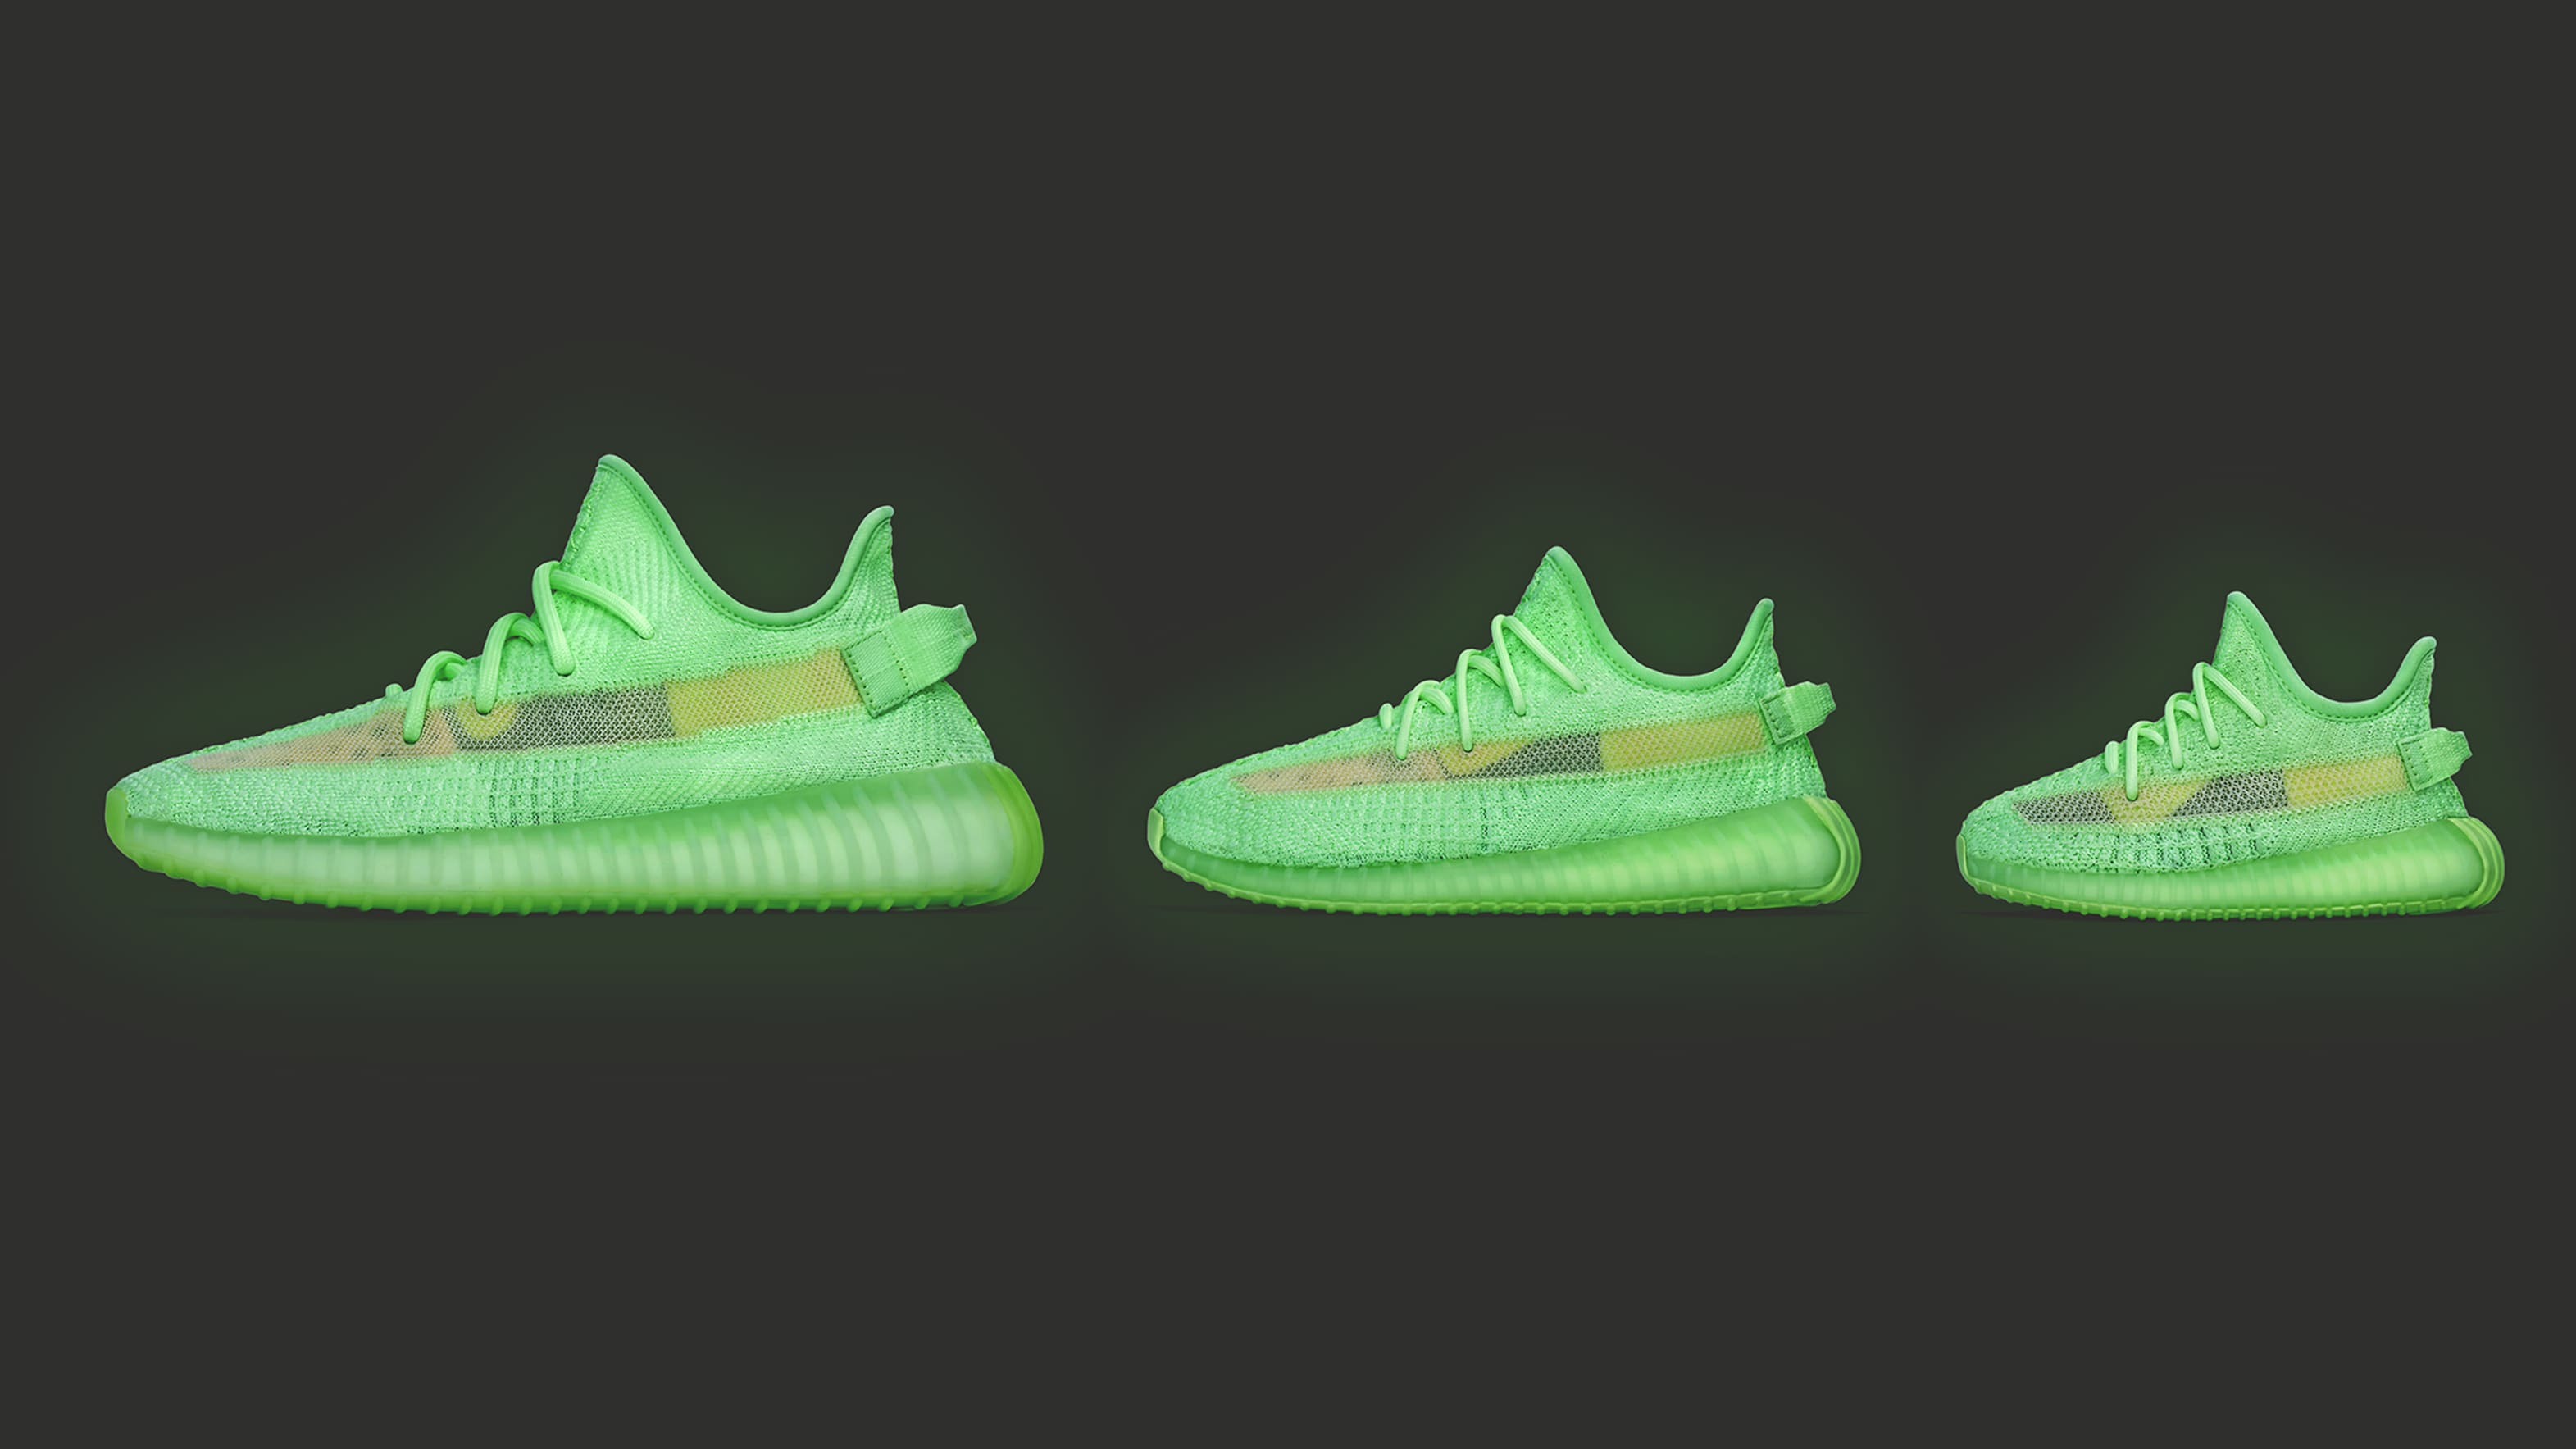 yeezy moonrock wallpaper p